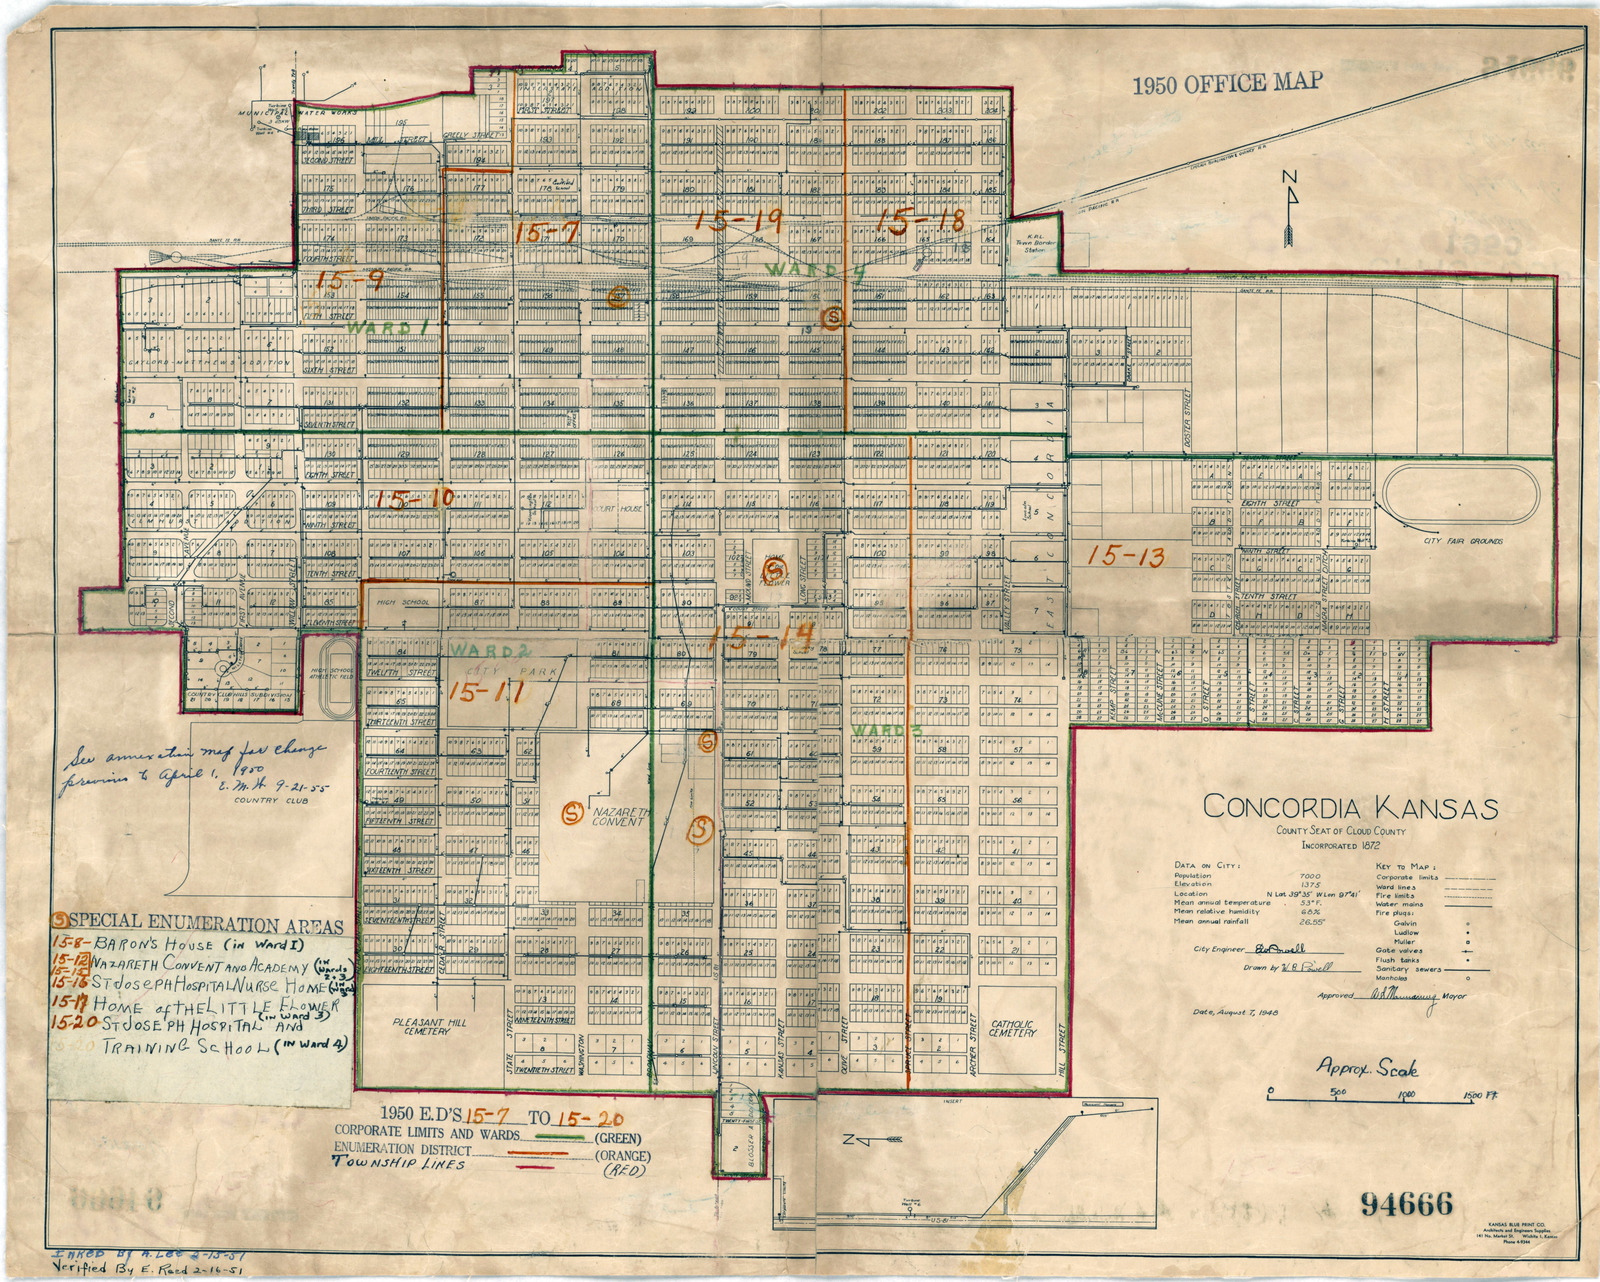 Concordia Kansas Map.1950 Census Enumeration District Maps Kansas Ks Cloud County